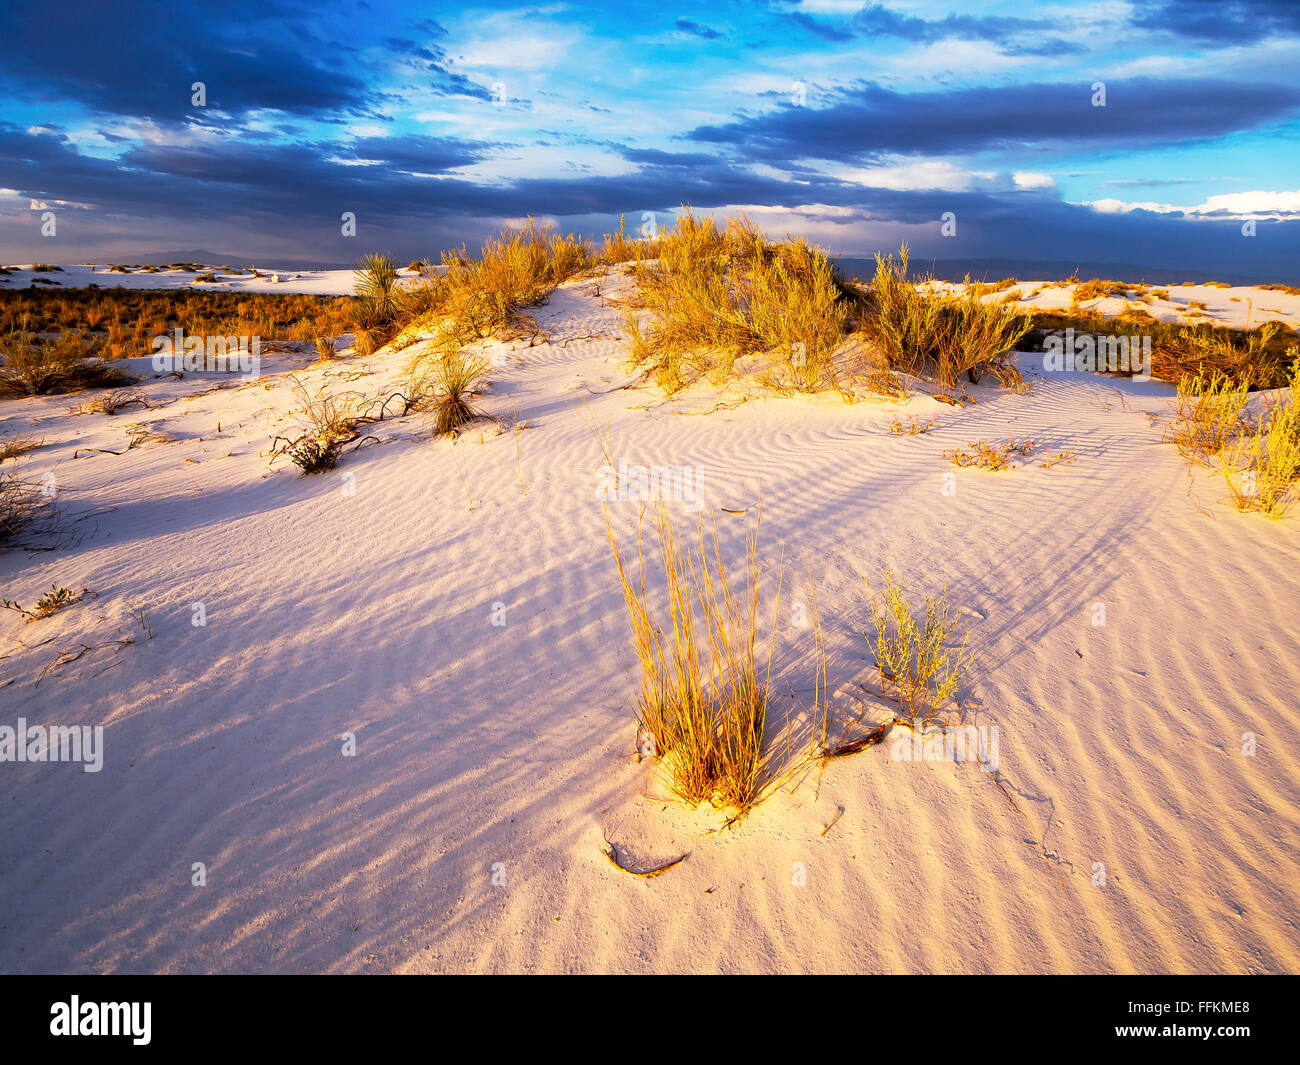 White Sands National Monument - Sunset - Stock Image